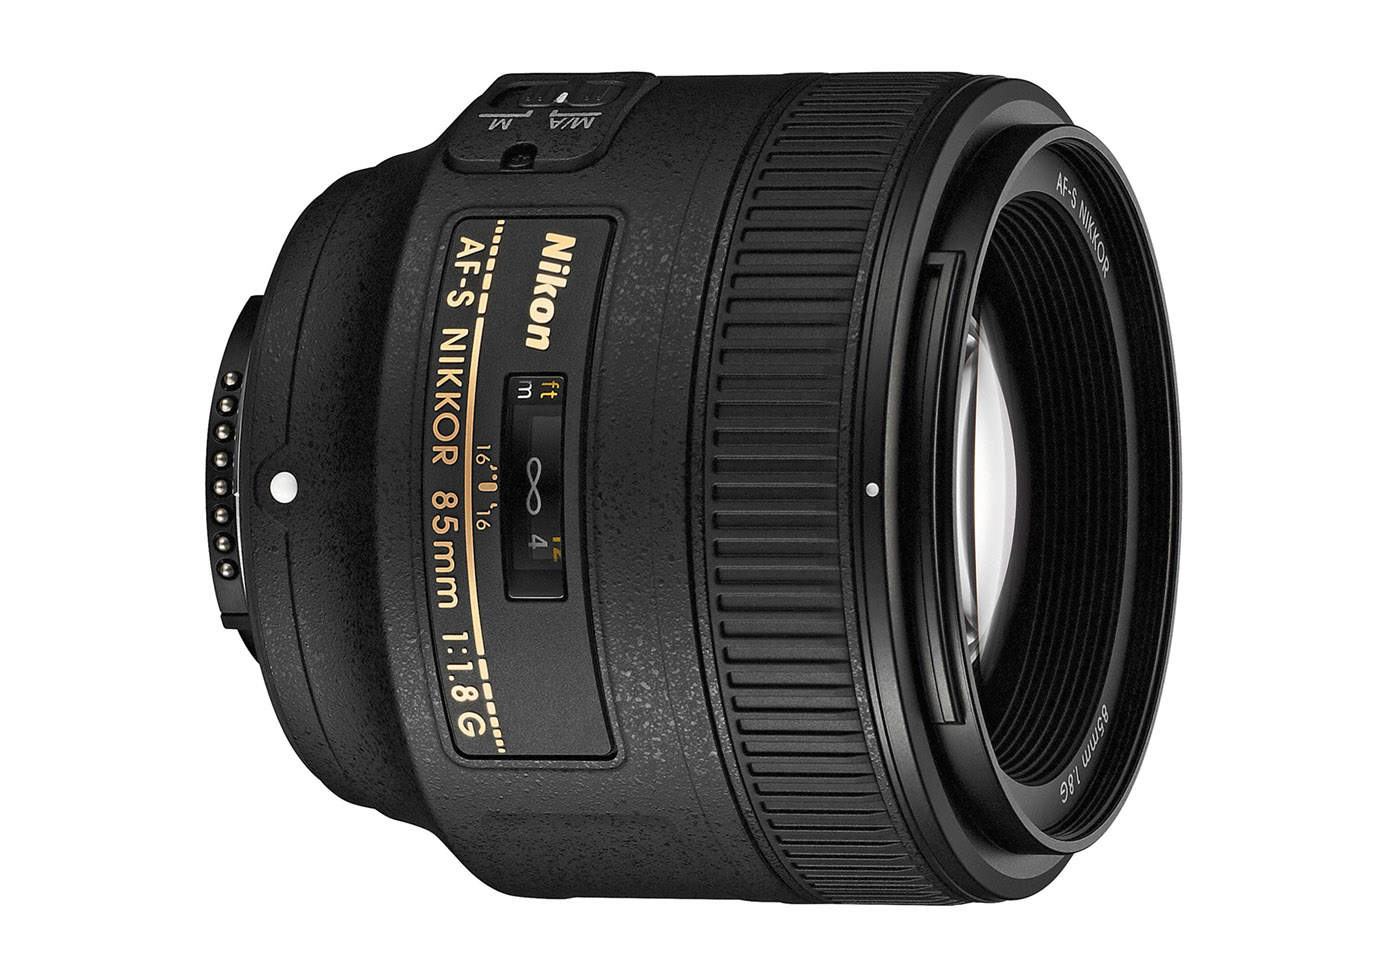 f9f499681f3 Nikon DSLRs. For both full-frame FX and DX APS-C cameras